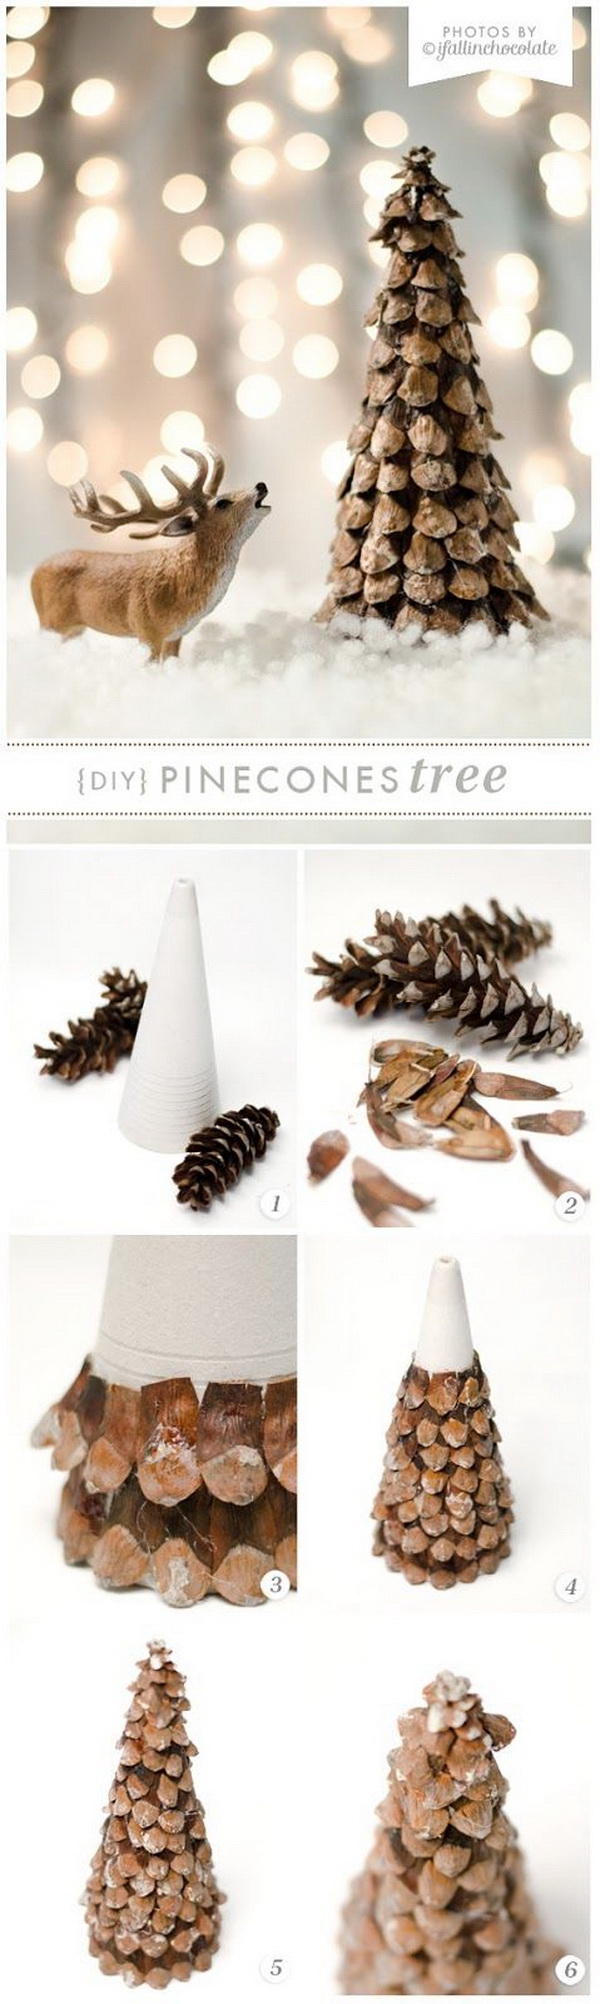 Festive diy pine cone crafts for your holiday decoration for Pine cone tree decorations